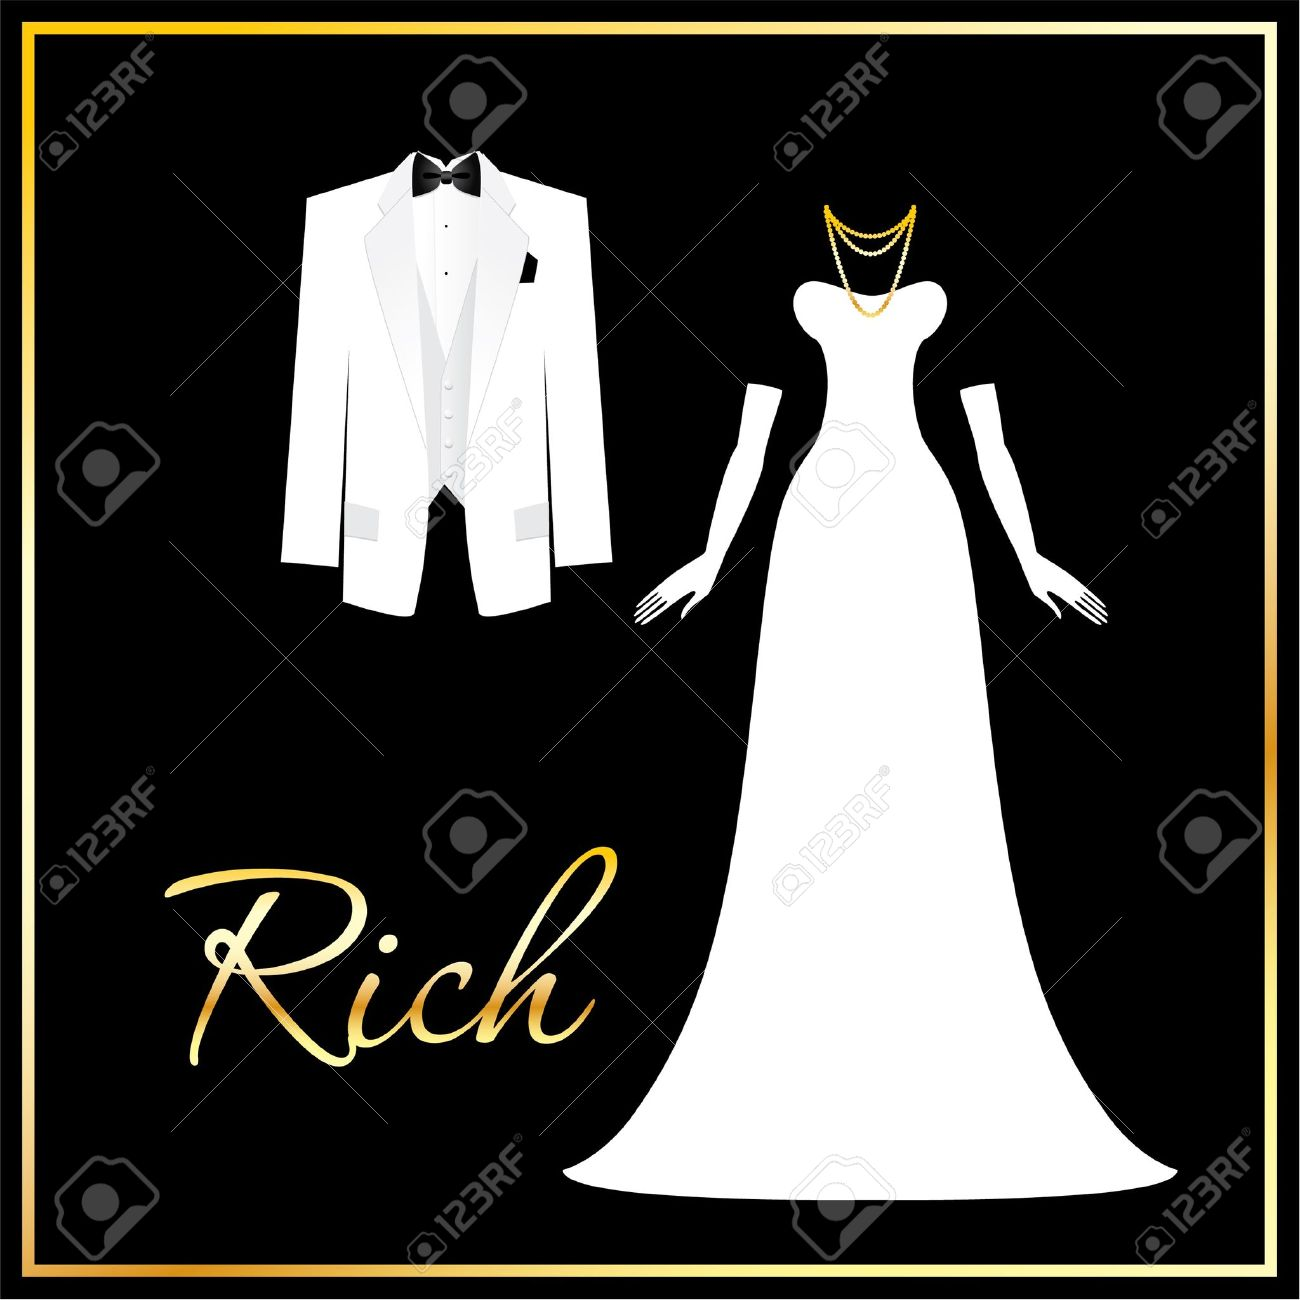 Dress code evening gown - Luxurious Dress Code A Symbol Of Wealth Success And Affluence For Men